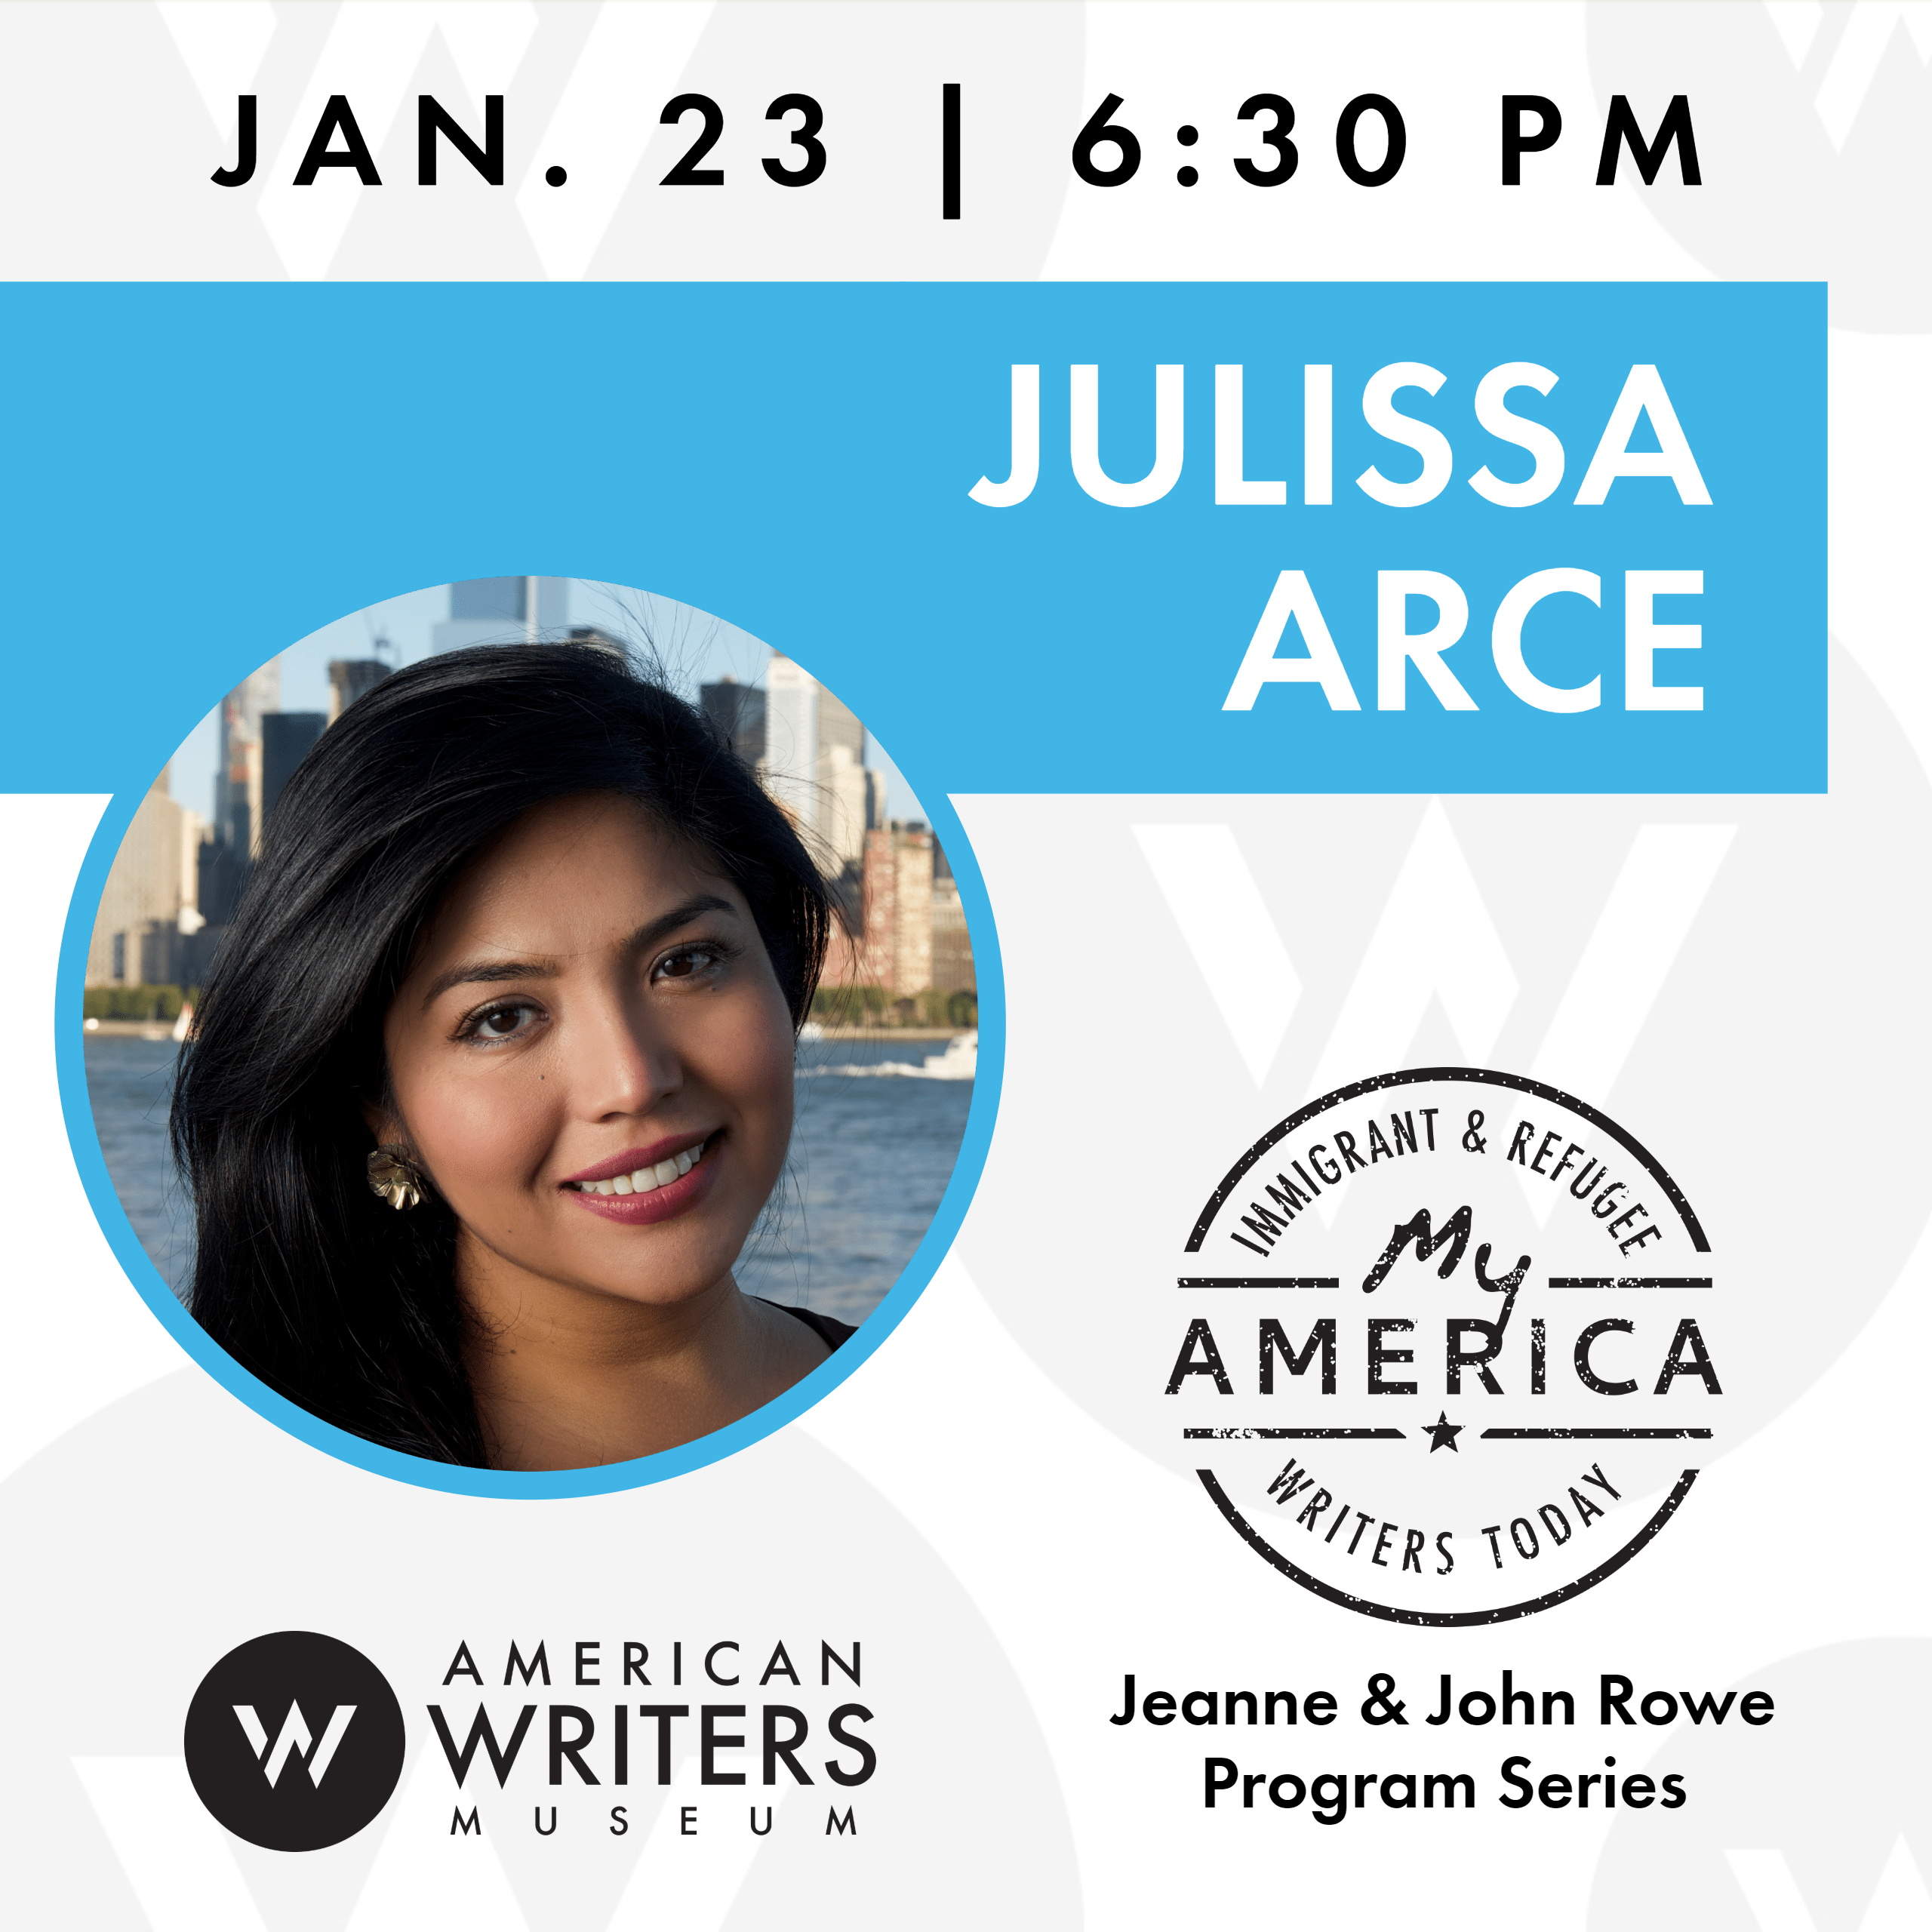 Julissa Arce book reading and signing at the American Writers Museum on January 23